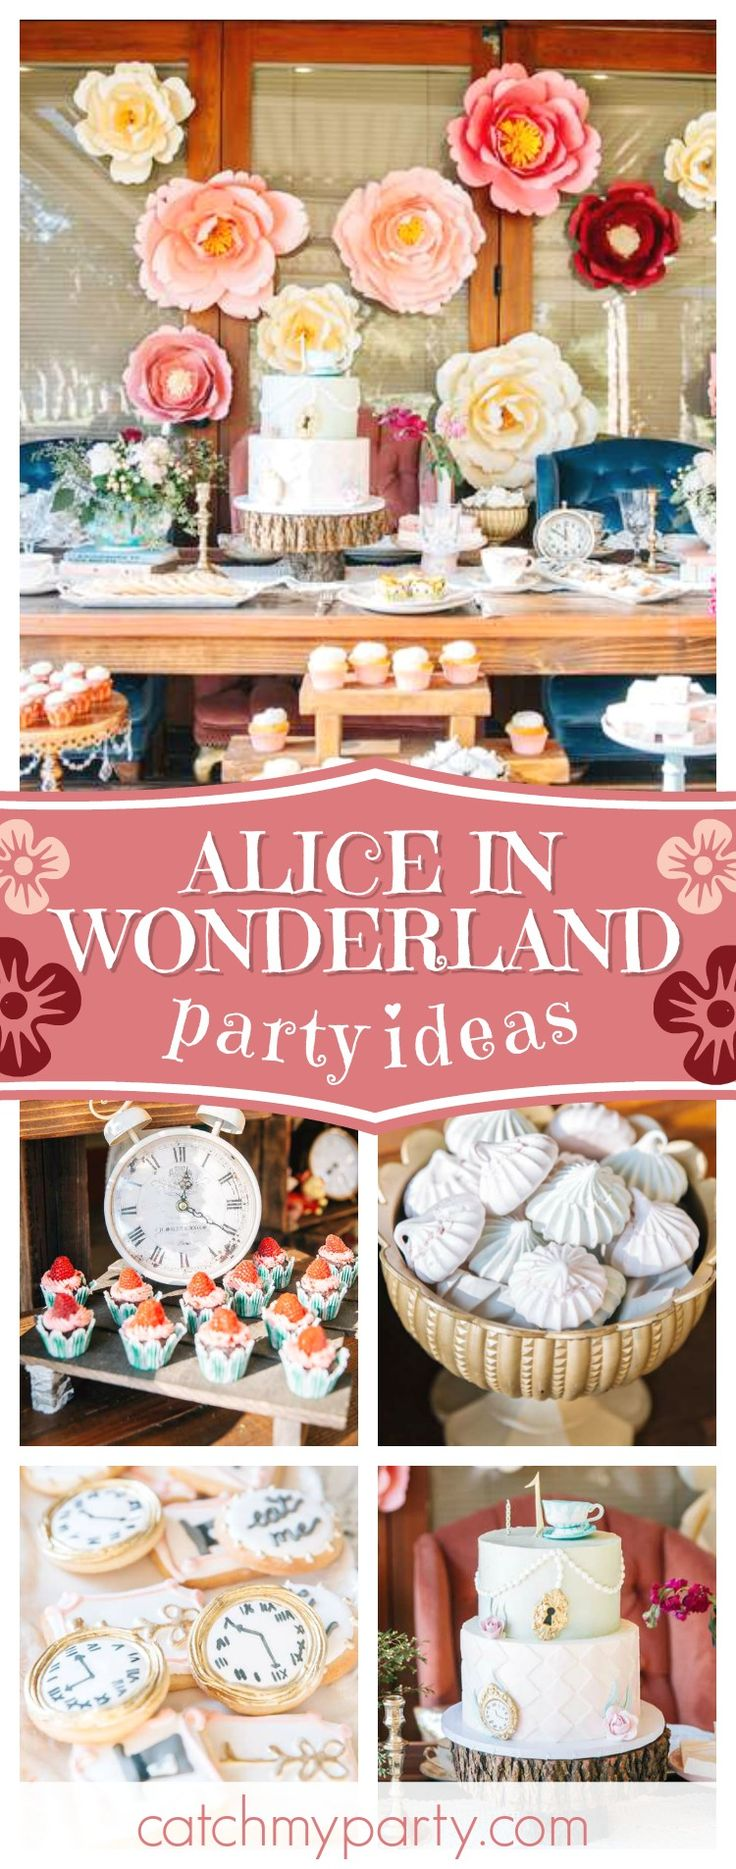 Take a look at this gorgeous Alice in Wonderland 1st birthday party! The birthday cake is amazing!! See more party ideas an dshare yours at CatchMyParty.com #aliceinwonderland 1stbithday #teaparty